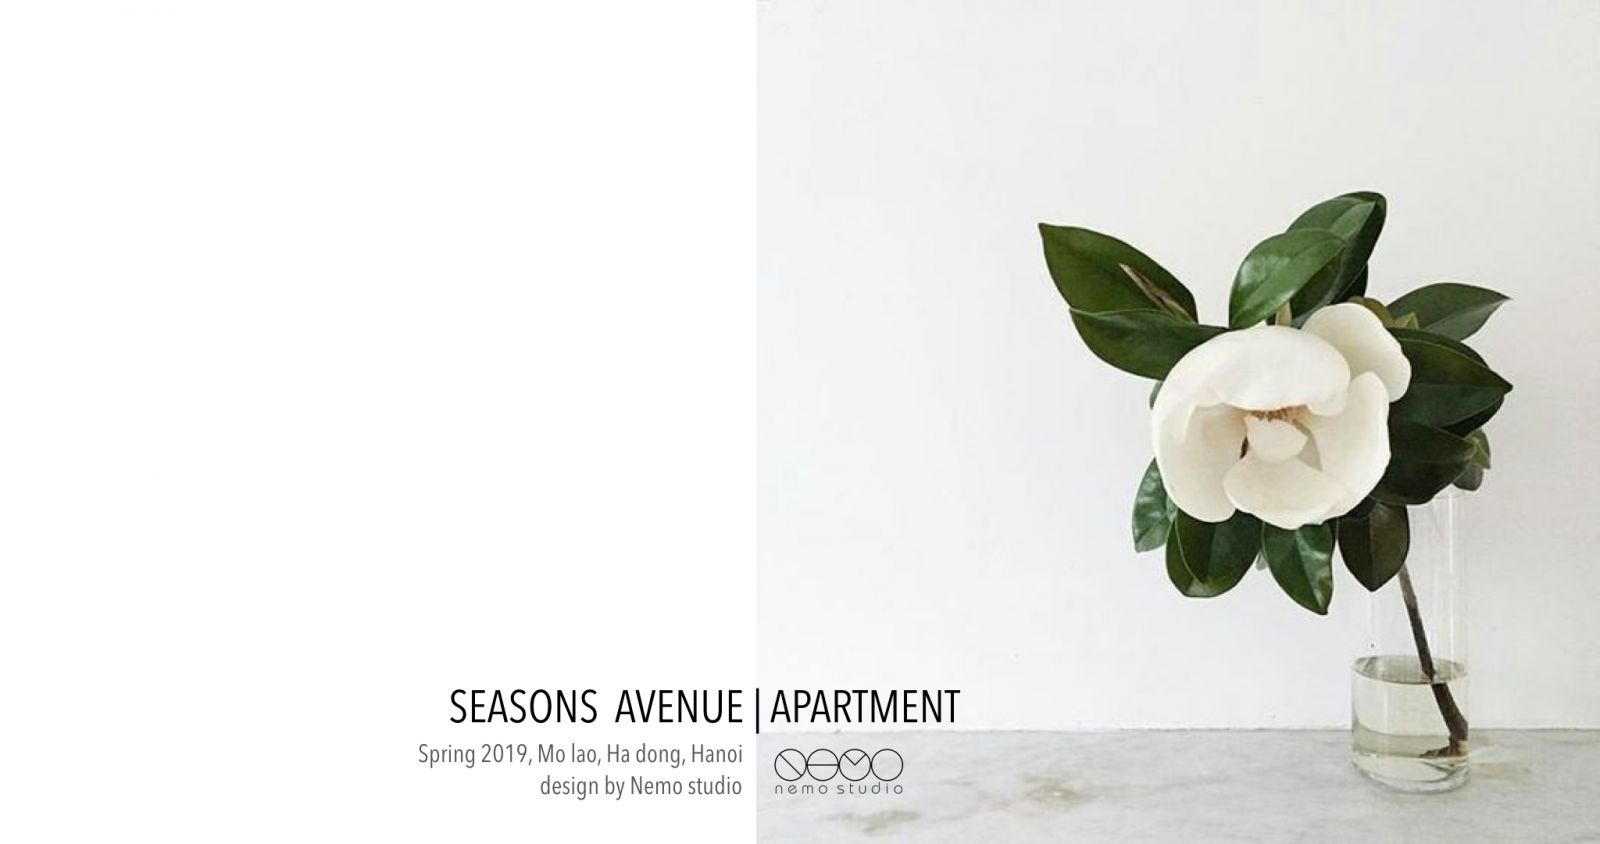 Seasons Avenue Apartment